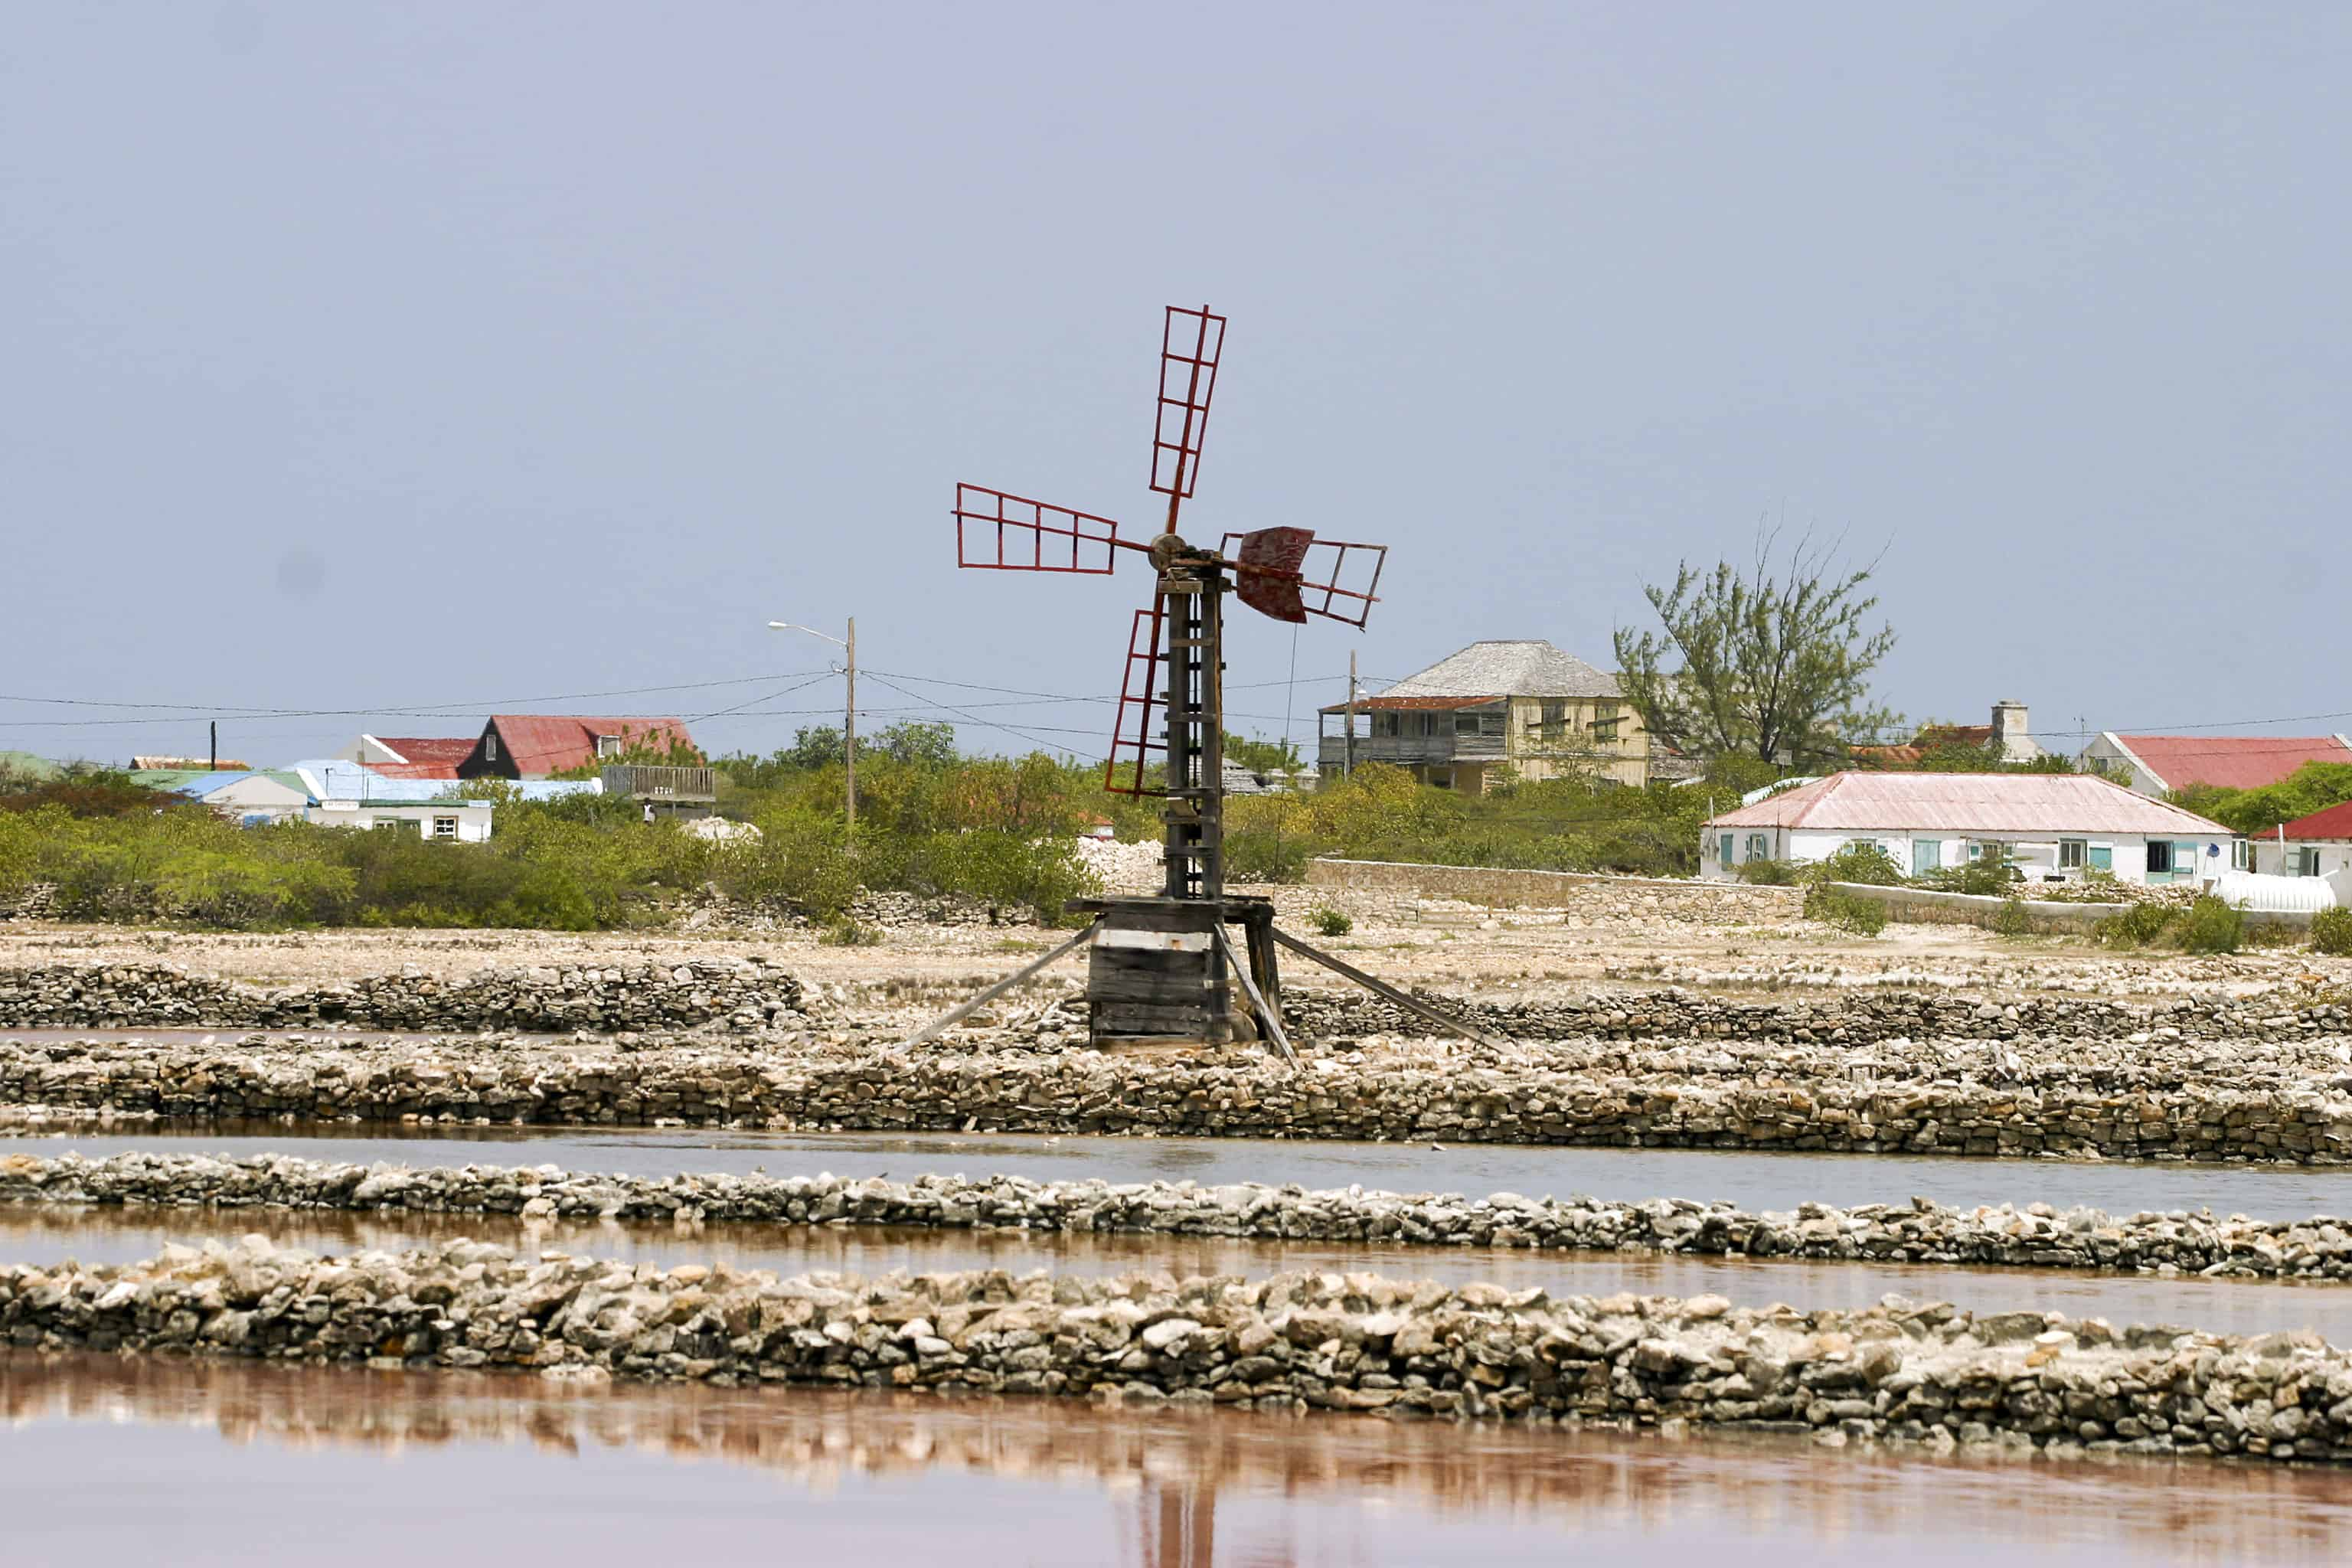 Old windmill for pumping sea-water on the salt-pans at Salt Cay, before destruction by hurricanes in recent years; Copyright: Dr Mike Pienkowski